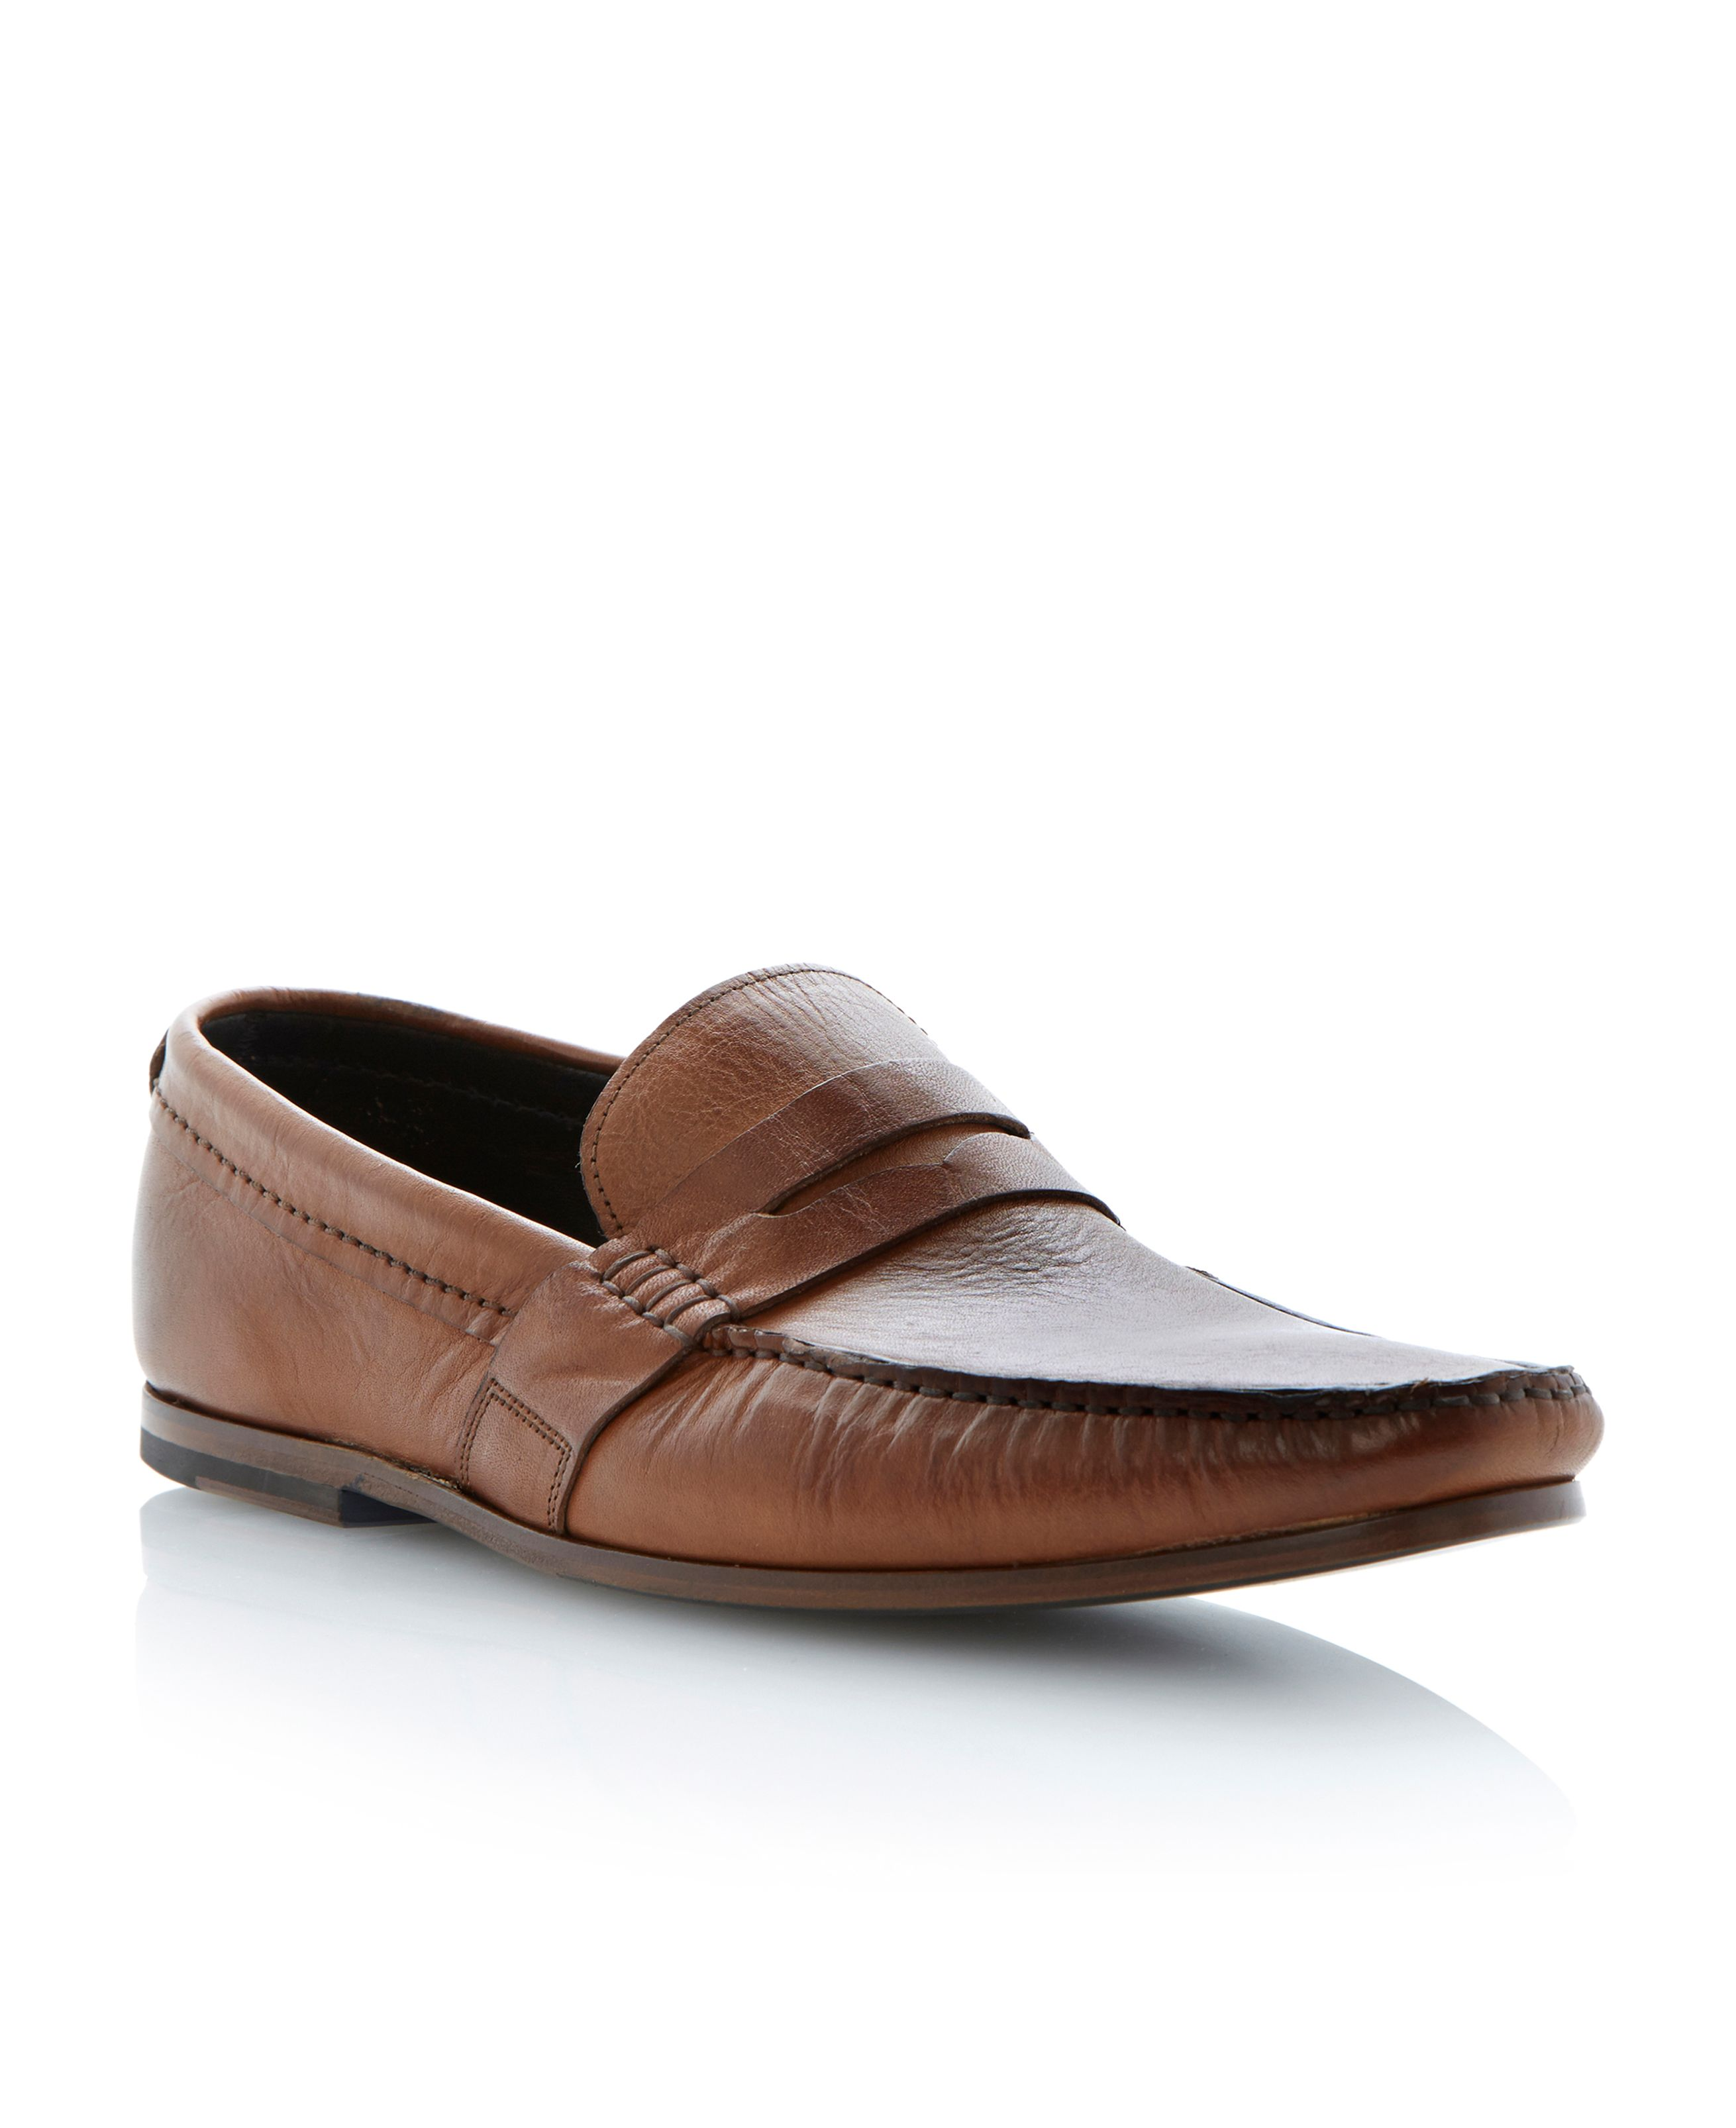 Acorn penny loafer